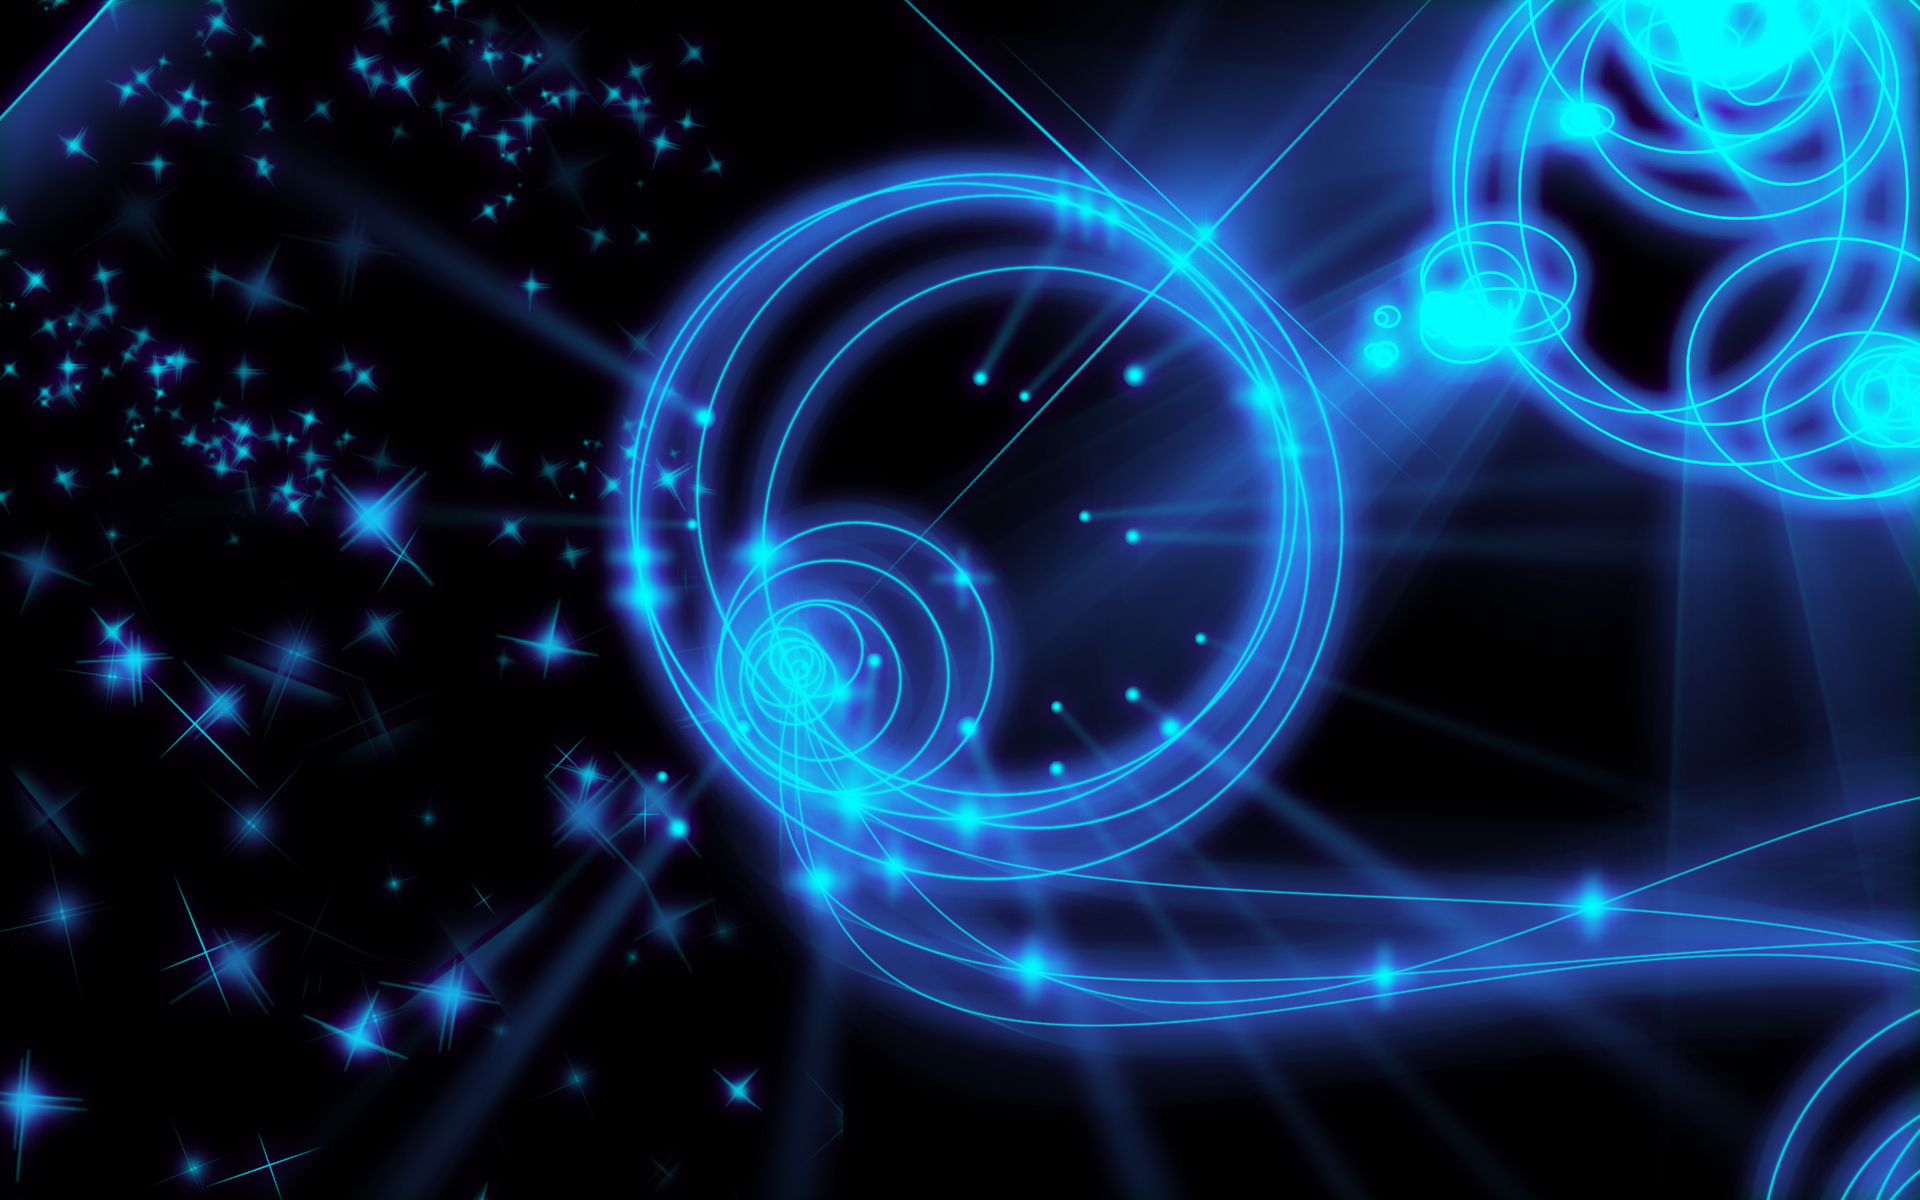 Blue Neon Wallpaper Images amp Pictures   Becuo 1920x1200